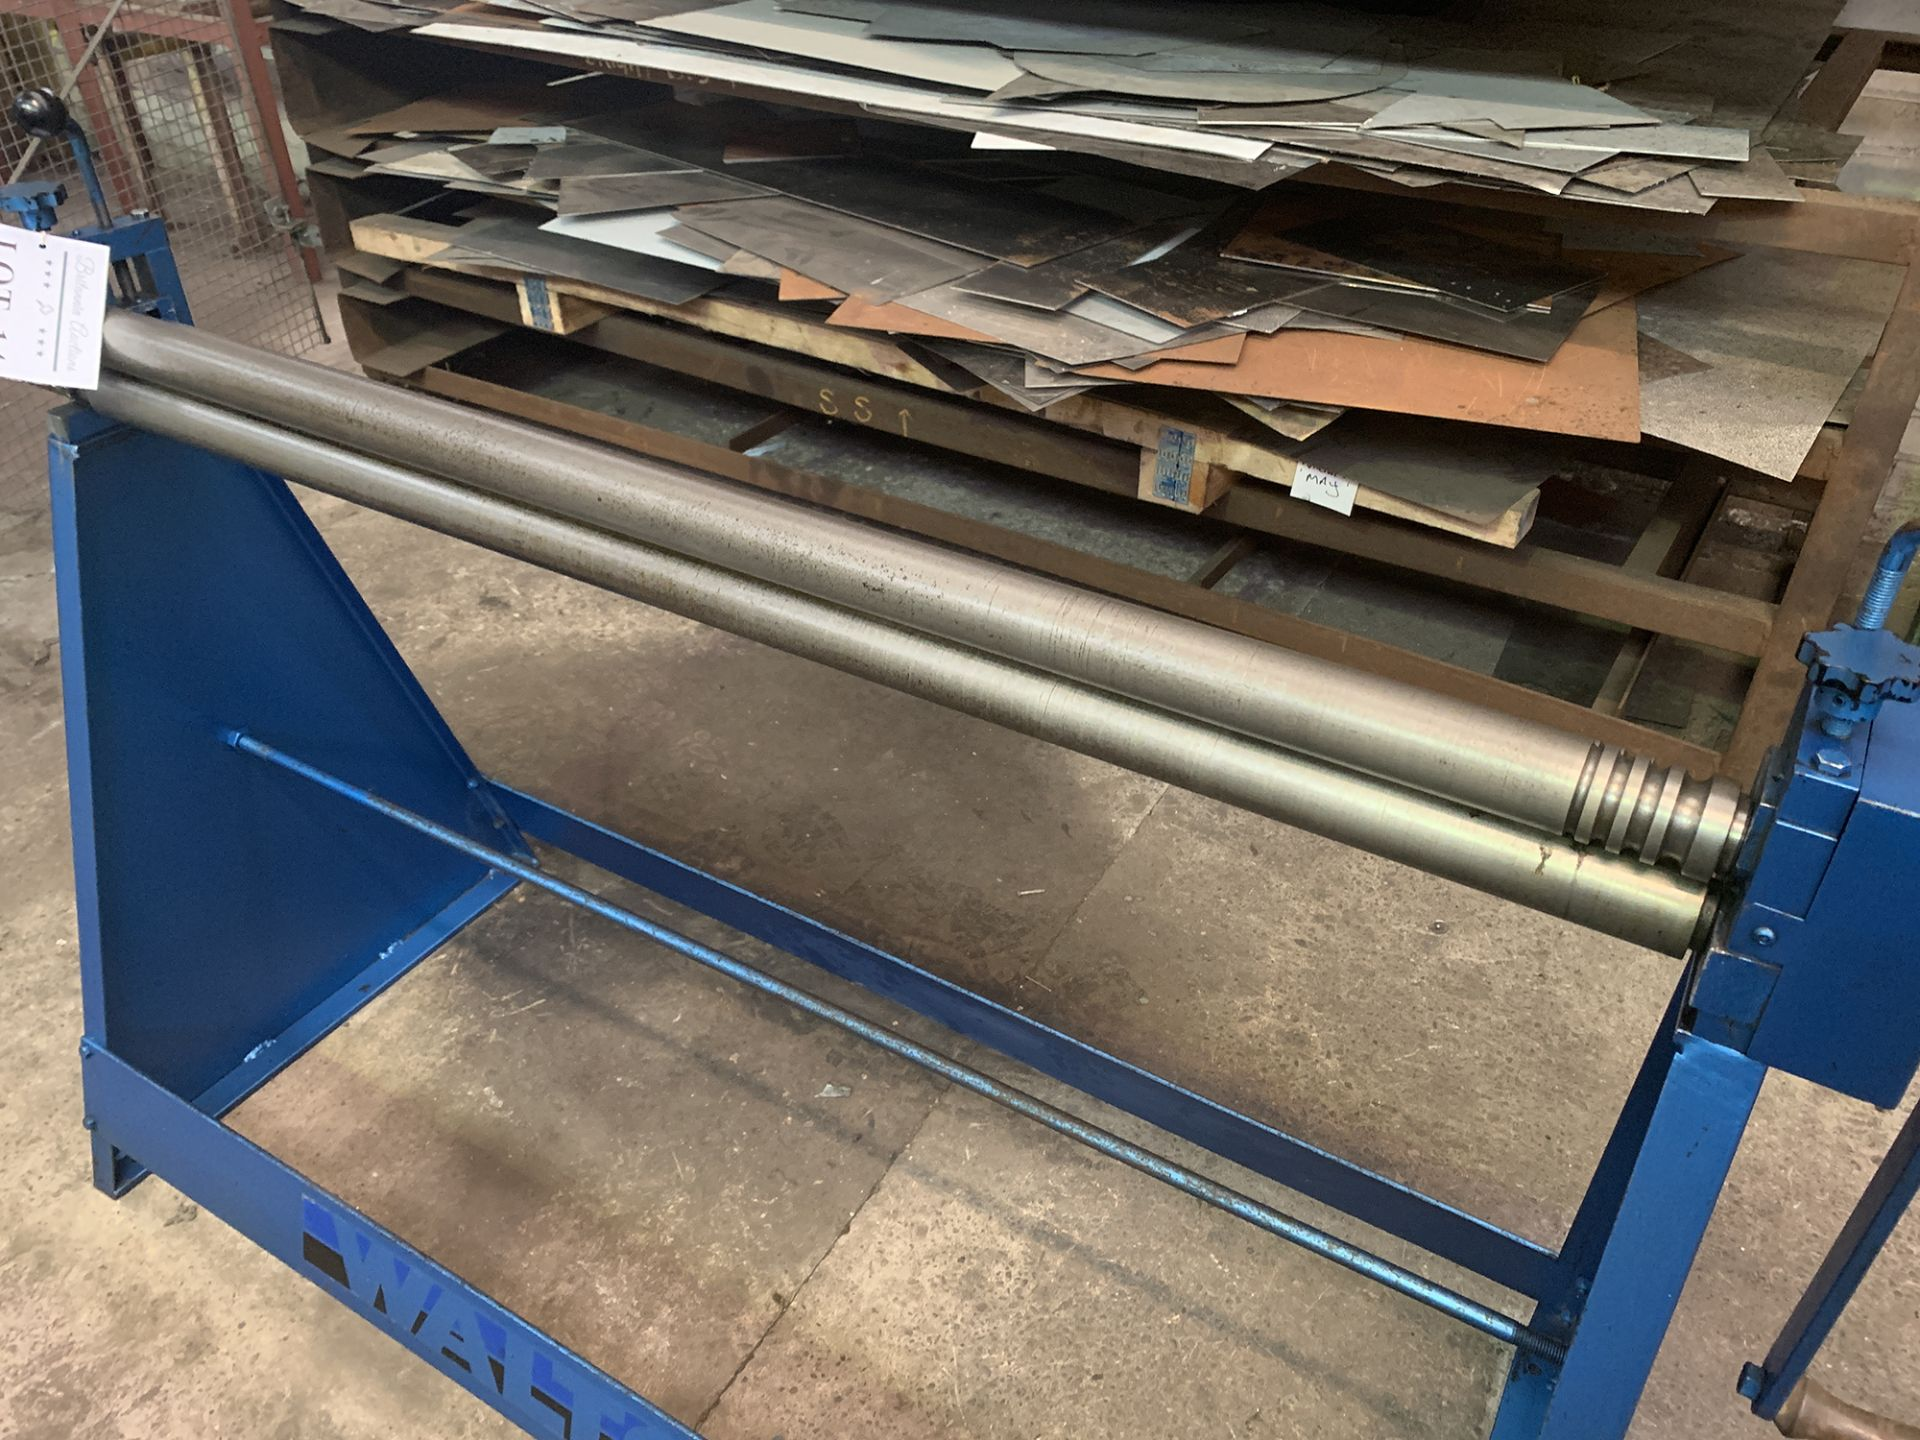 "Lot 14 - Waltons Initial Pinch Manual Bending Rolls. Capacity 50"" x 2'' Diameter Roll."